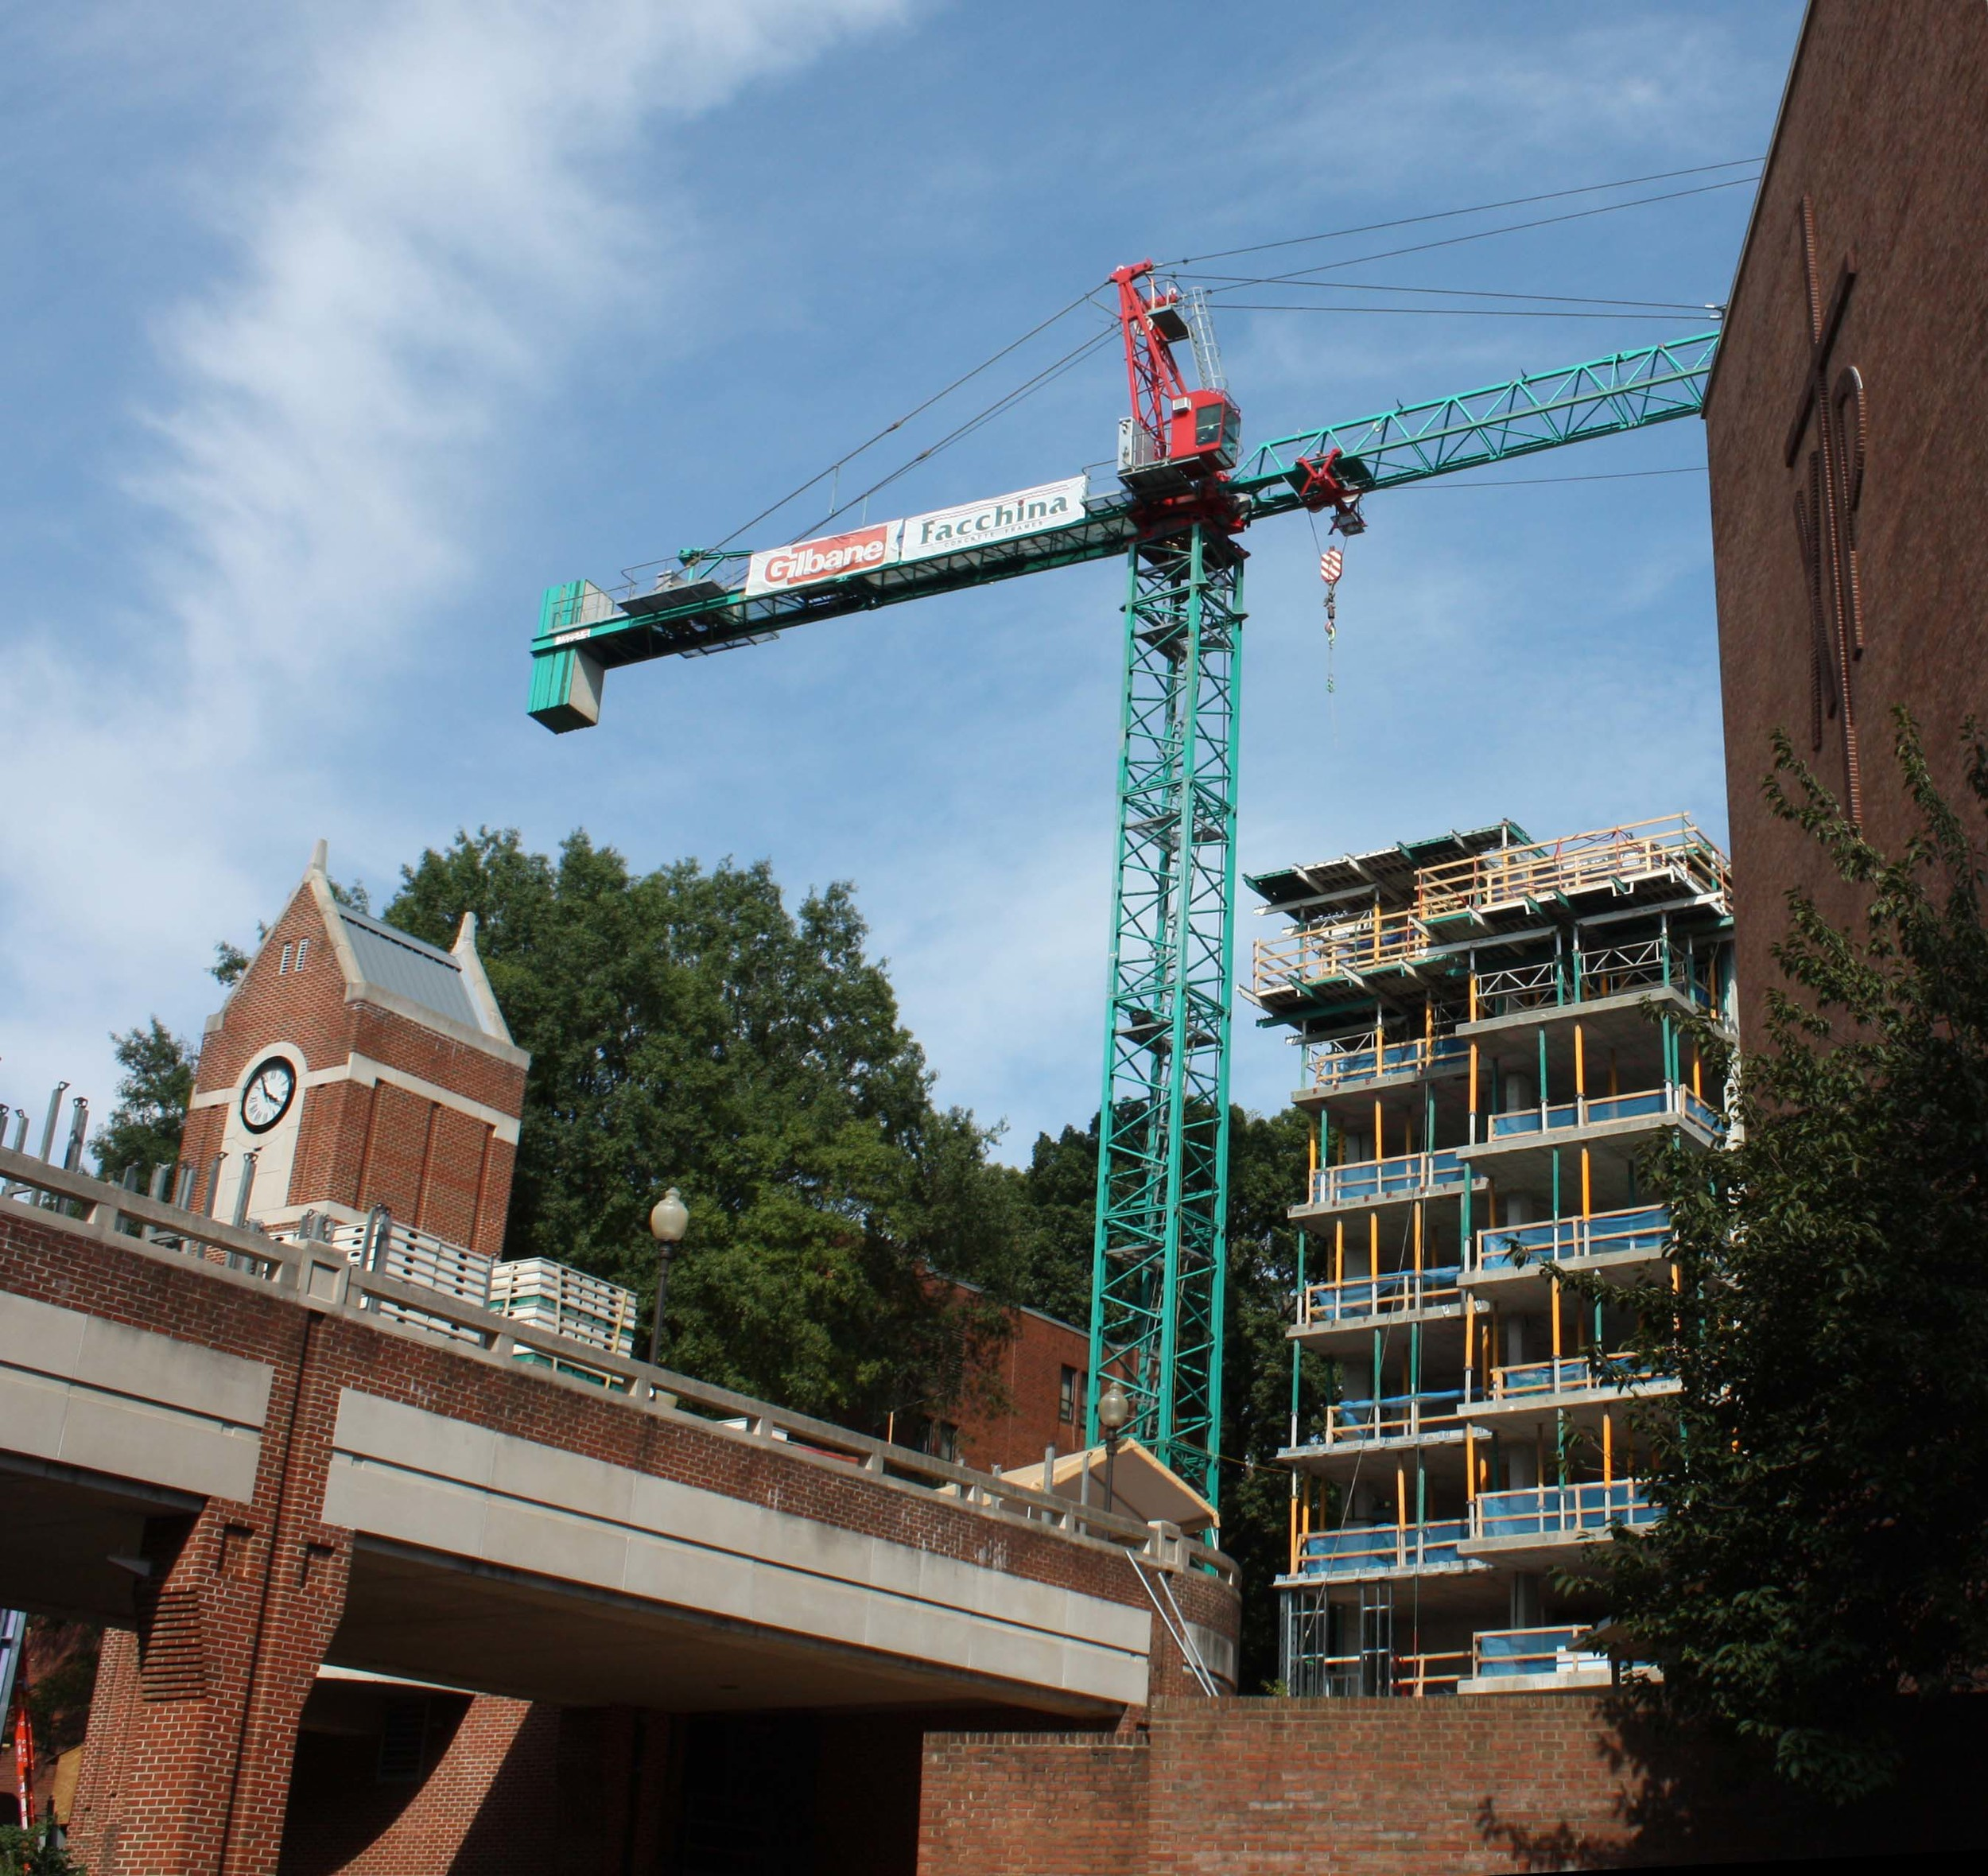 Construction cranes, such as this one at northeast triangle residence hall, loom over the campus skyline.